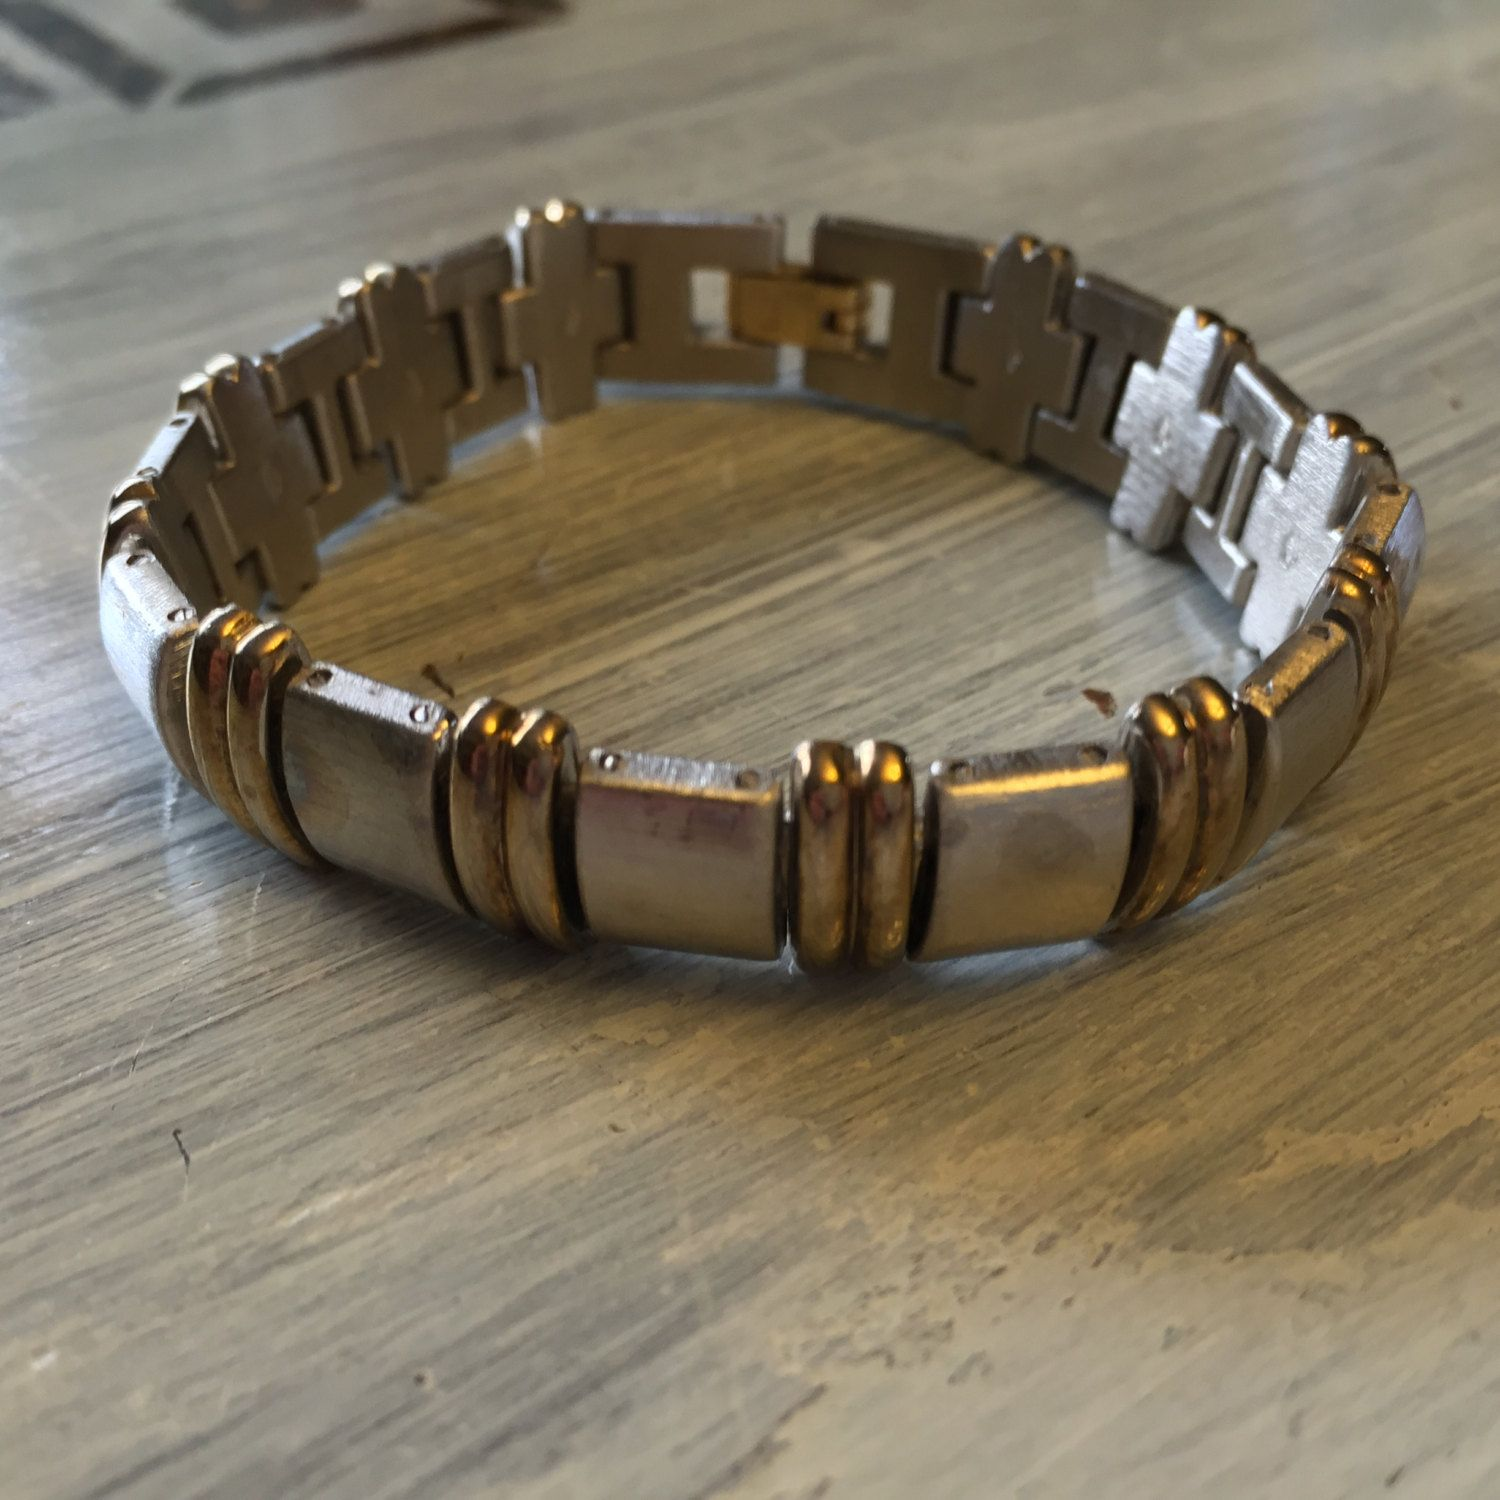 Handsome silver u gold link bracelet two toned textured thick heavy